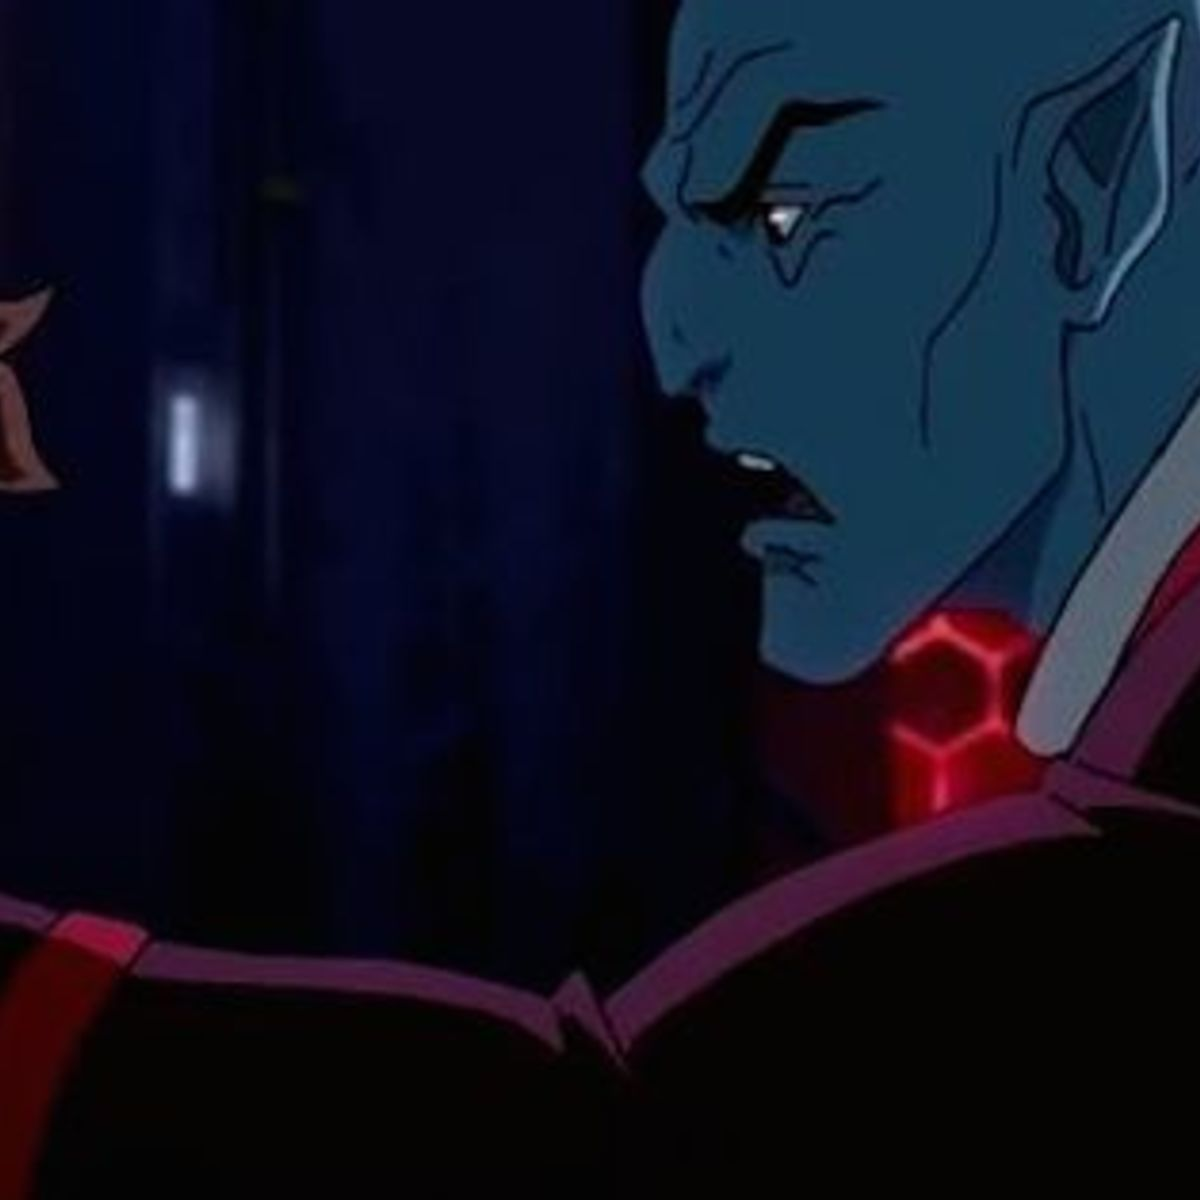 the-guardians-of-the-galaxy-animated-series-shows-young-peter-quill-and-yondu-in-its-fir-540297.jpg